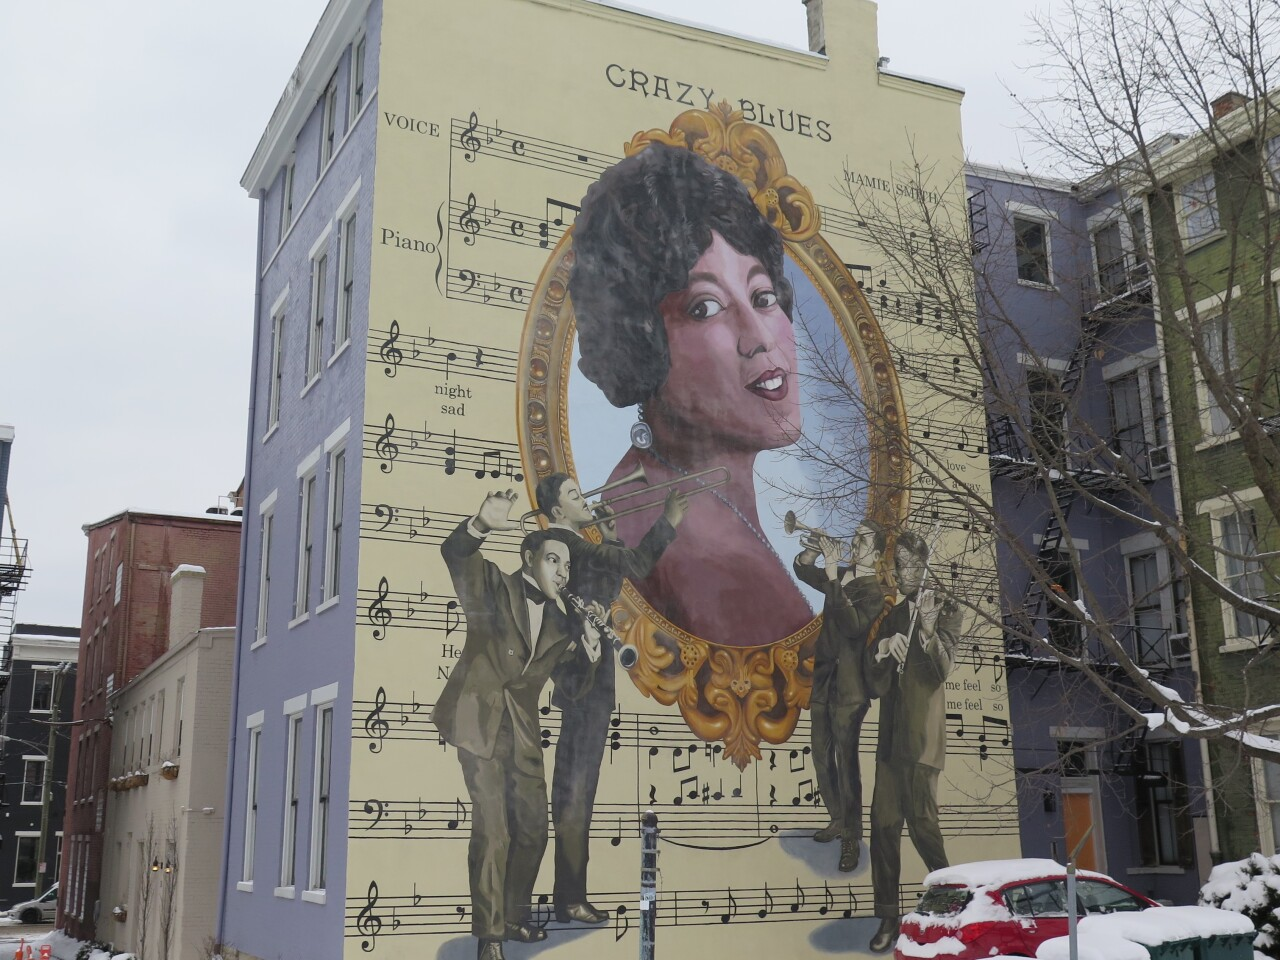 Crazy_Blues_mural_cropped.JPG